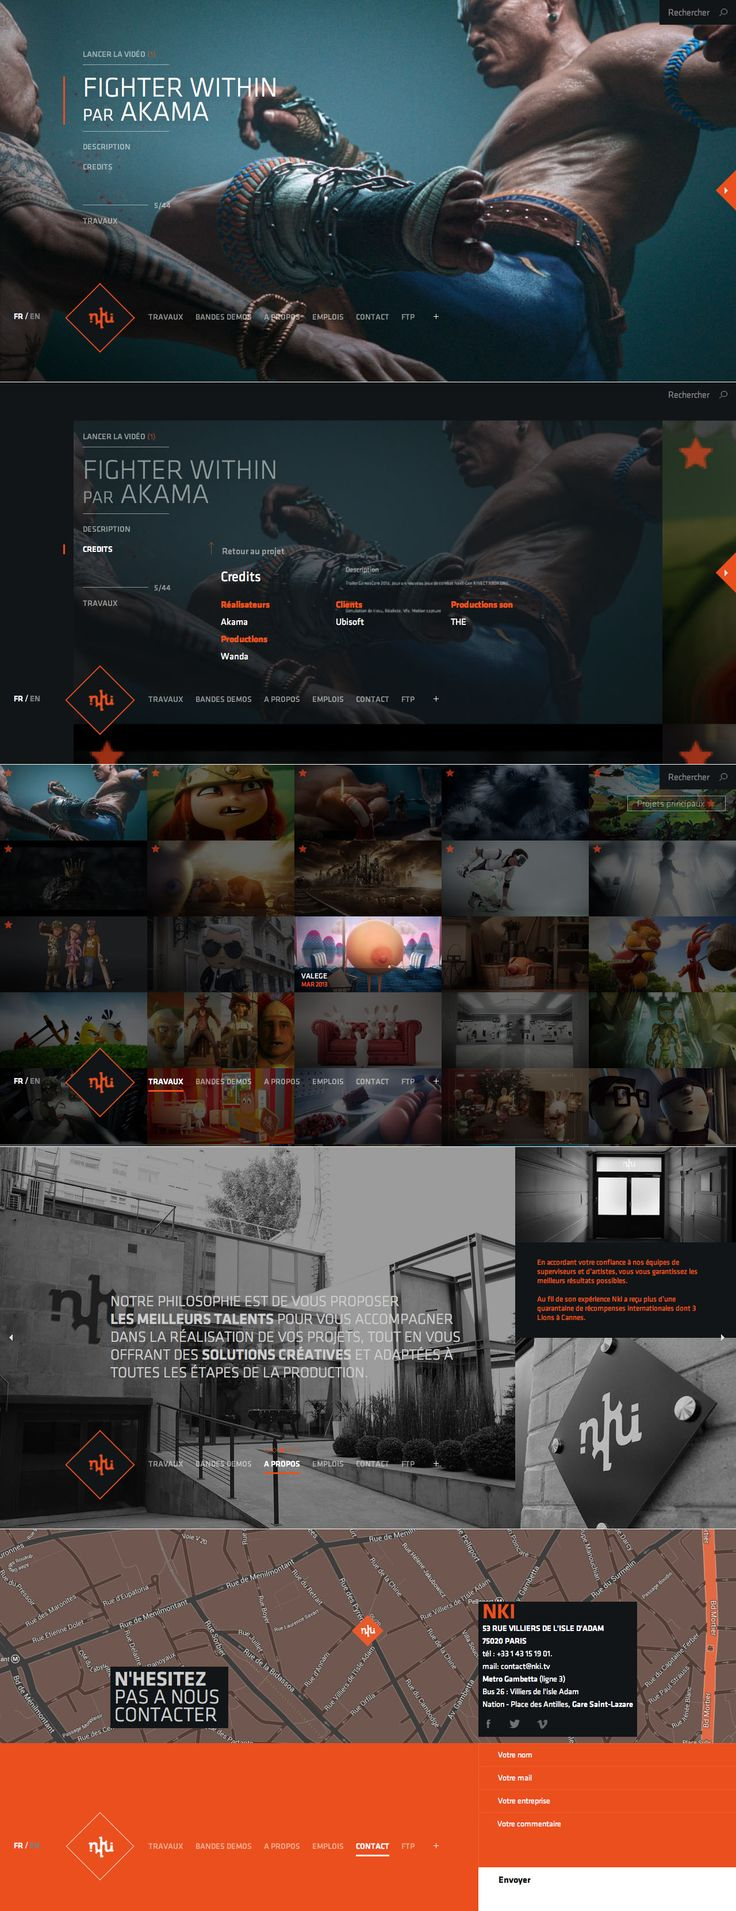 NKI \\ Such a cool website for this studio. http://nki.tv